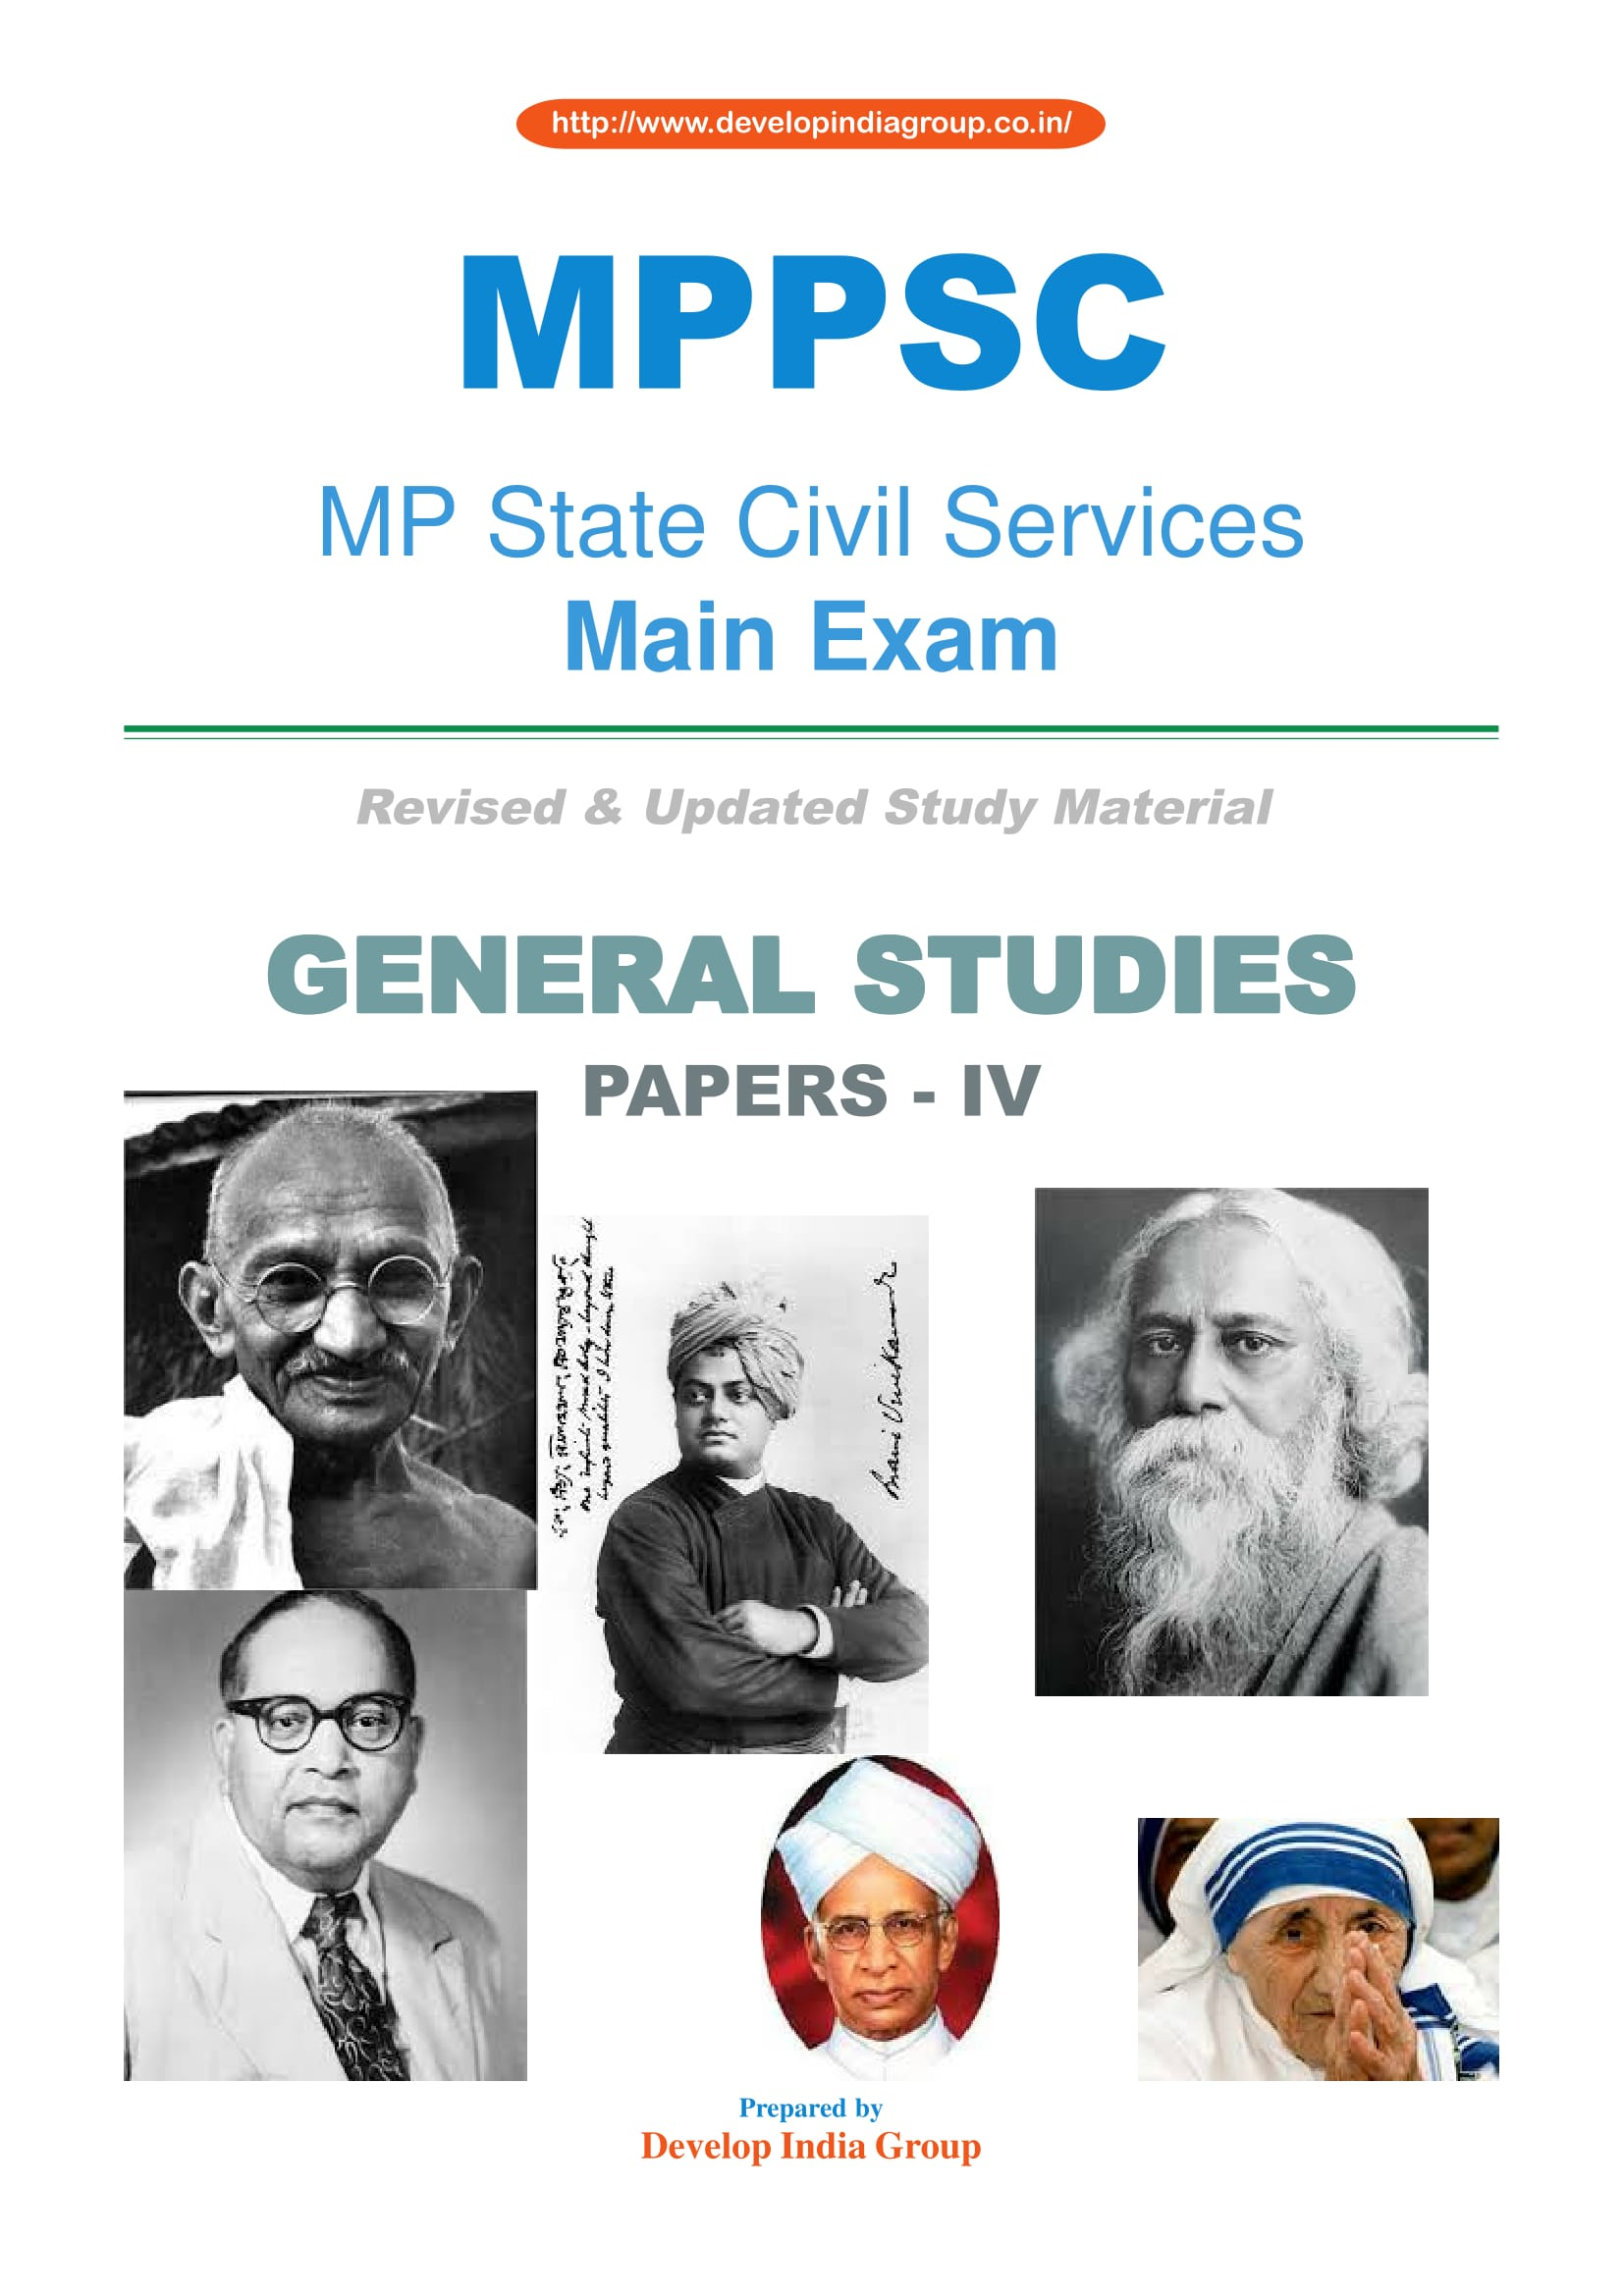 MPPSC Main (revised) Paper IV General Studies (English)